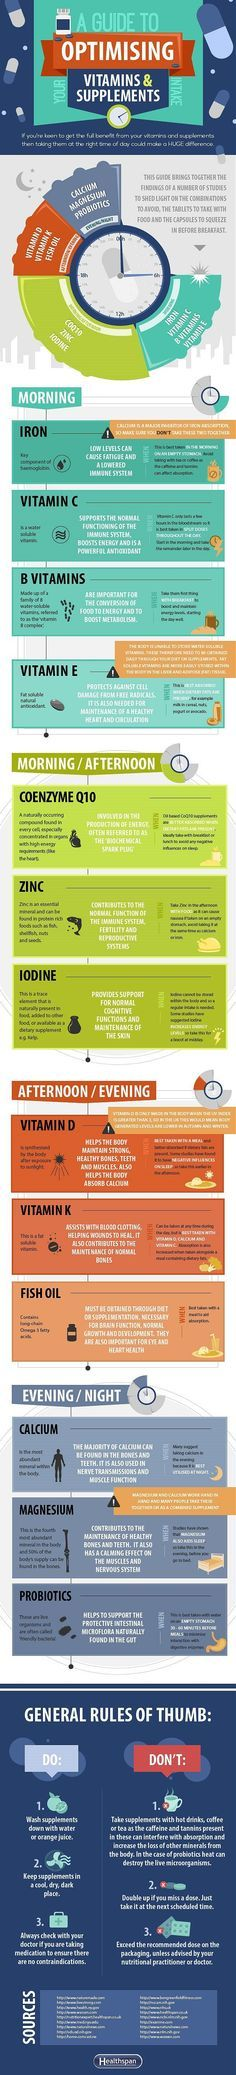 The Best Hour to take Vitamins and Supplements #health #supplements